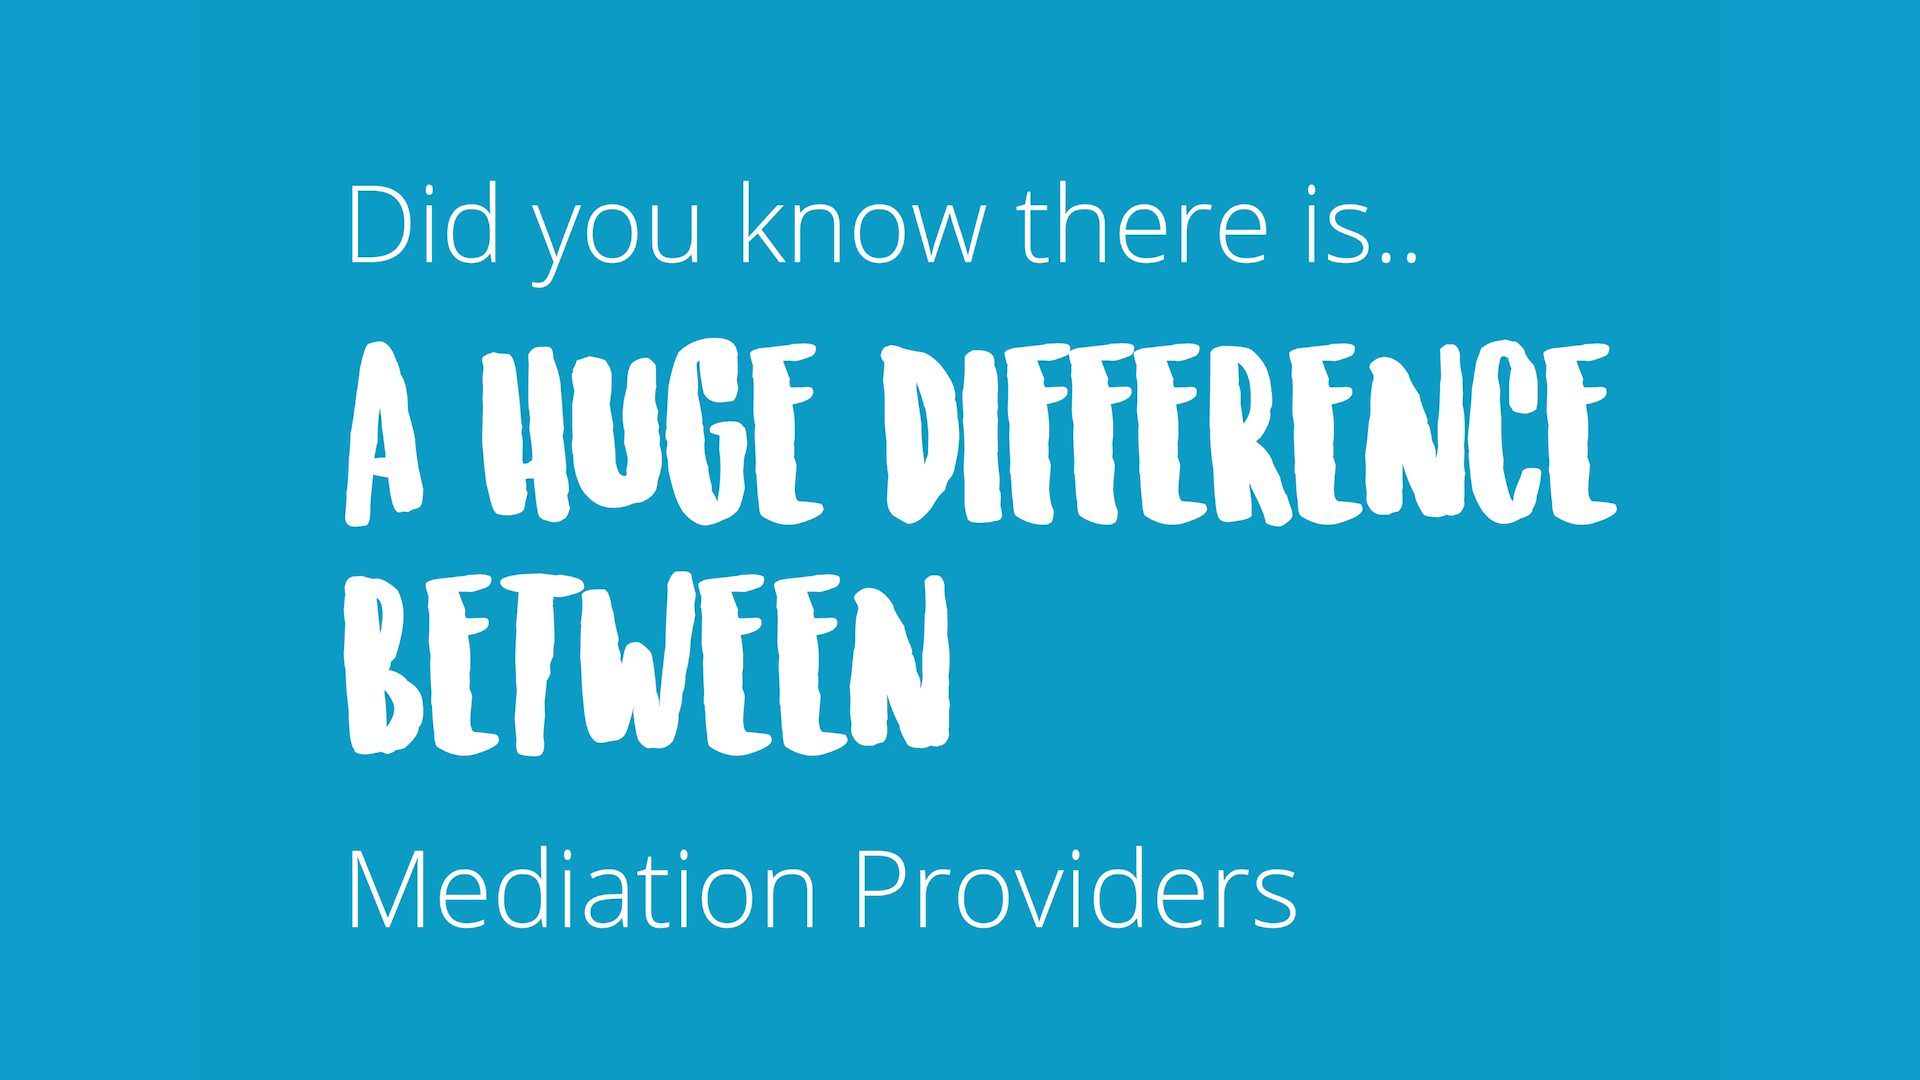 There is a huge difference between mediation providers